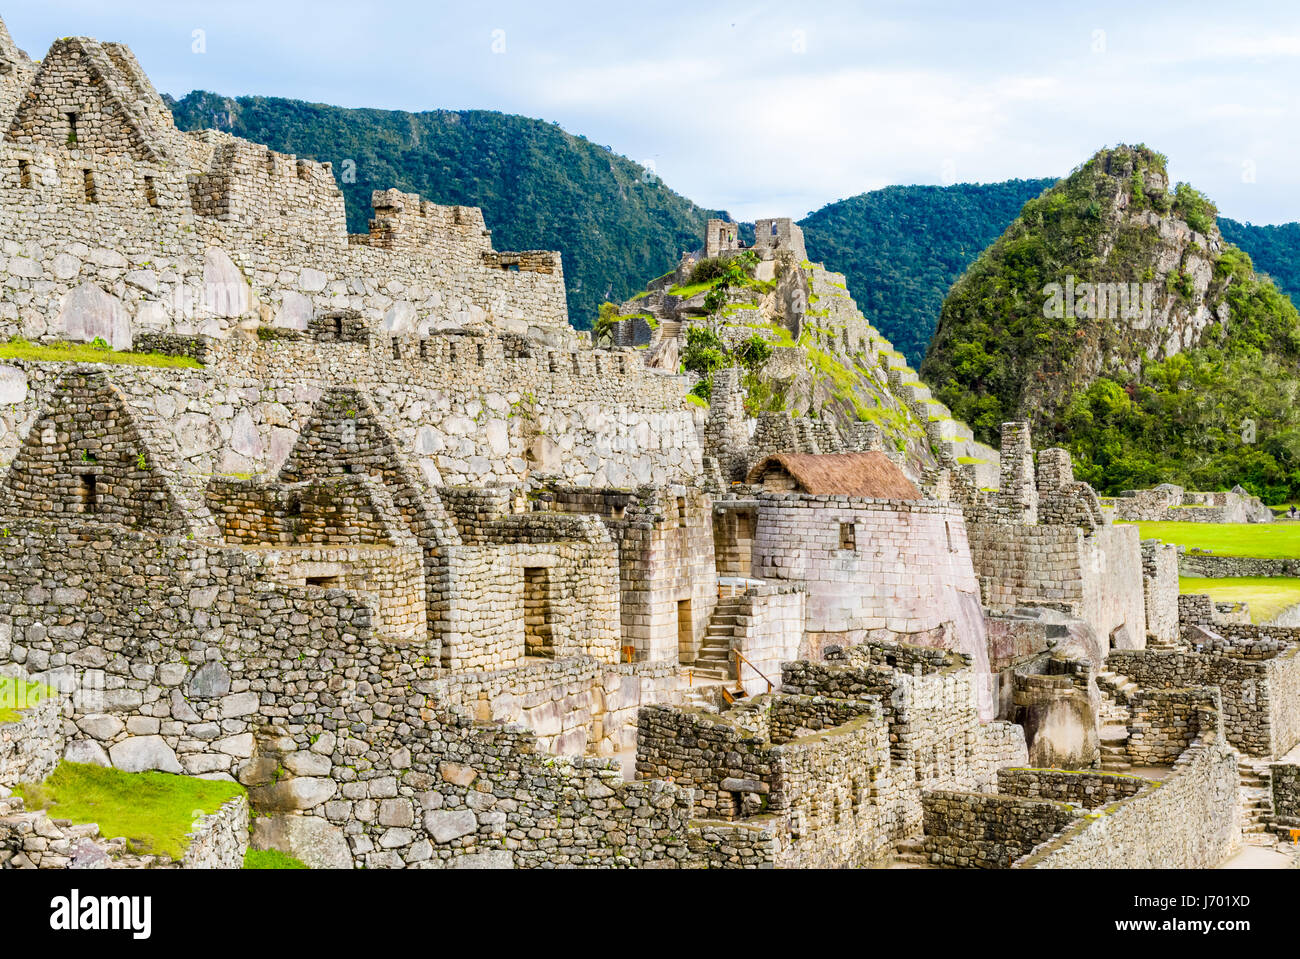 Machu Picchu, Incas ruins in the peruvian Andes at Cuzco Peru - Stock Image